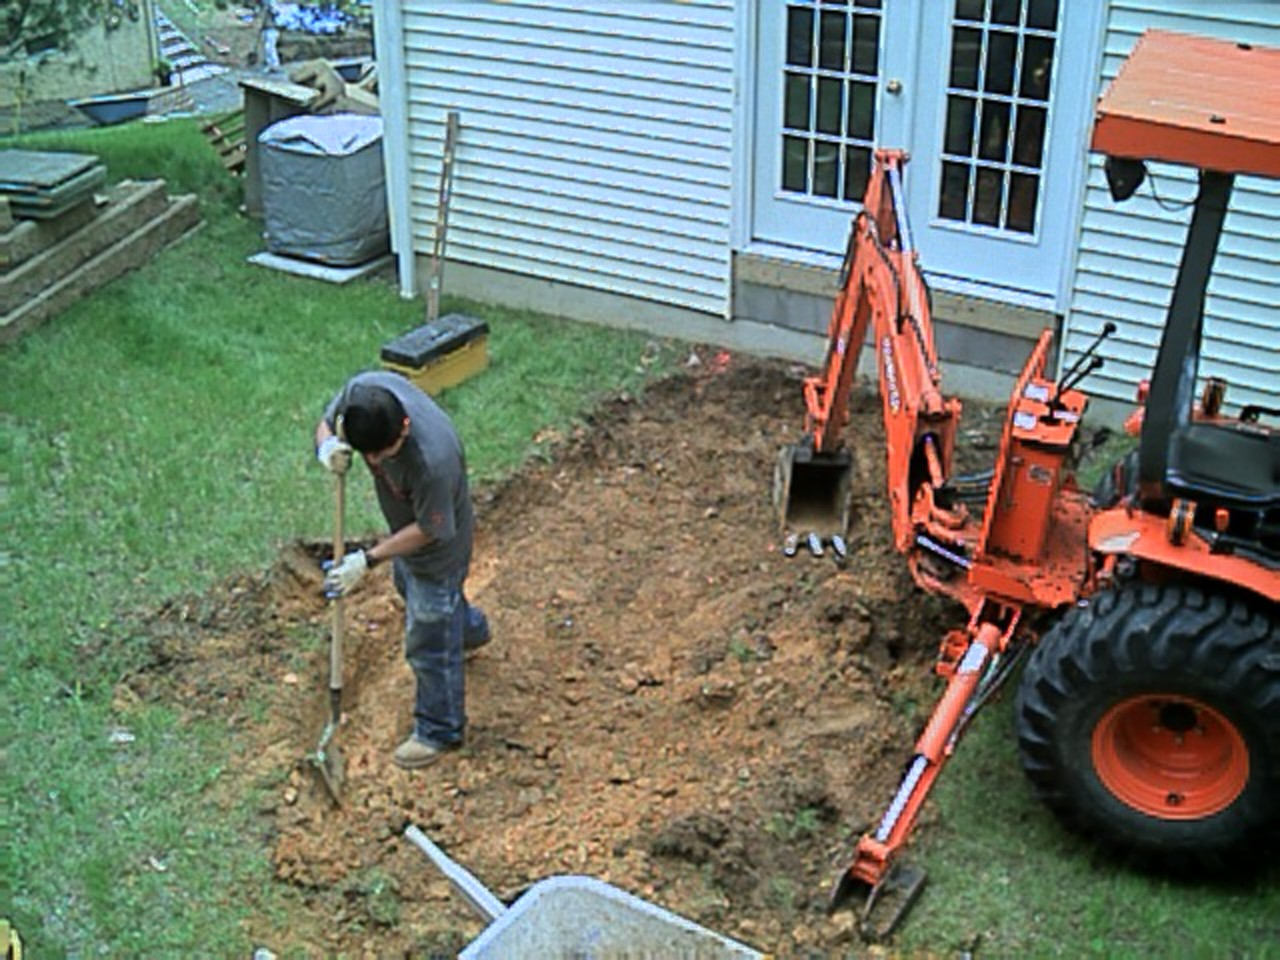 Since the machine broke down, we had to do some digging the old fashioned way.